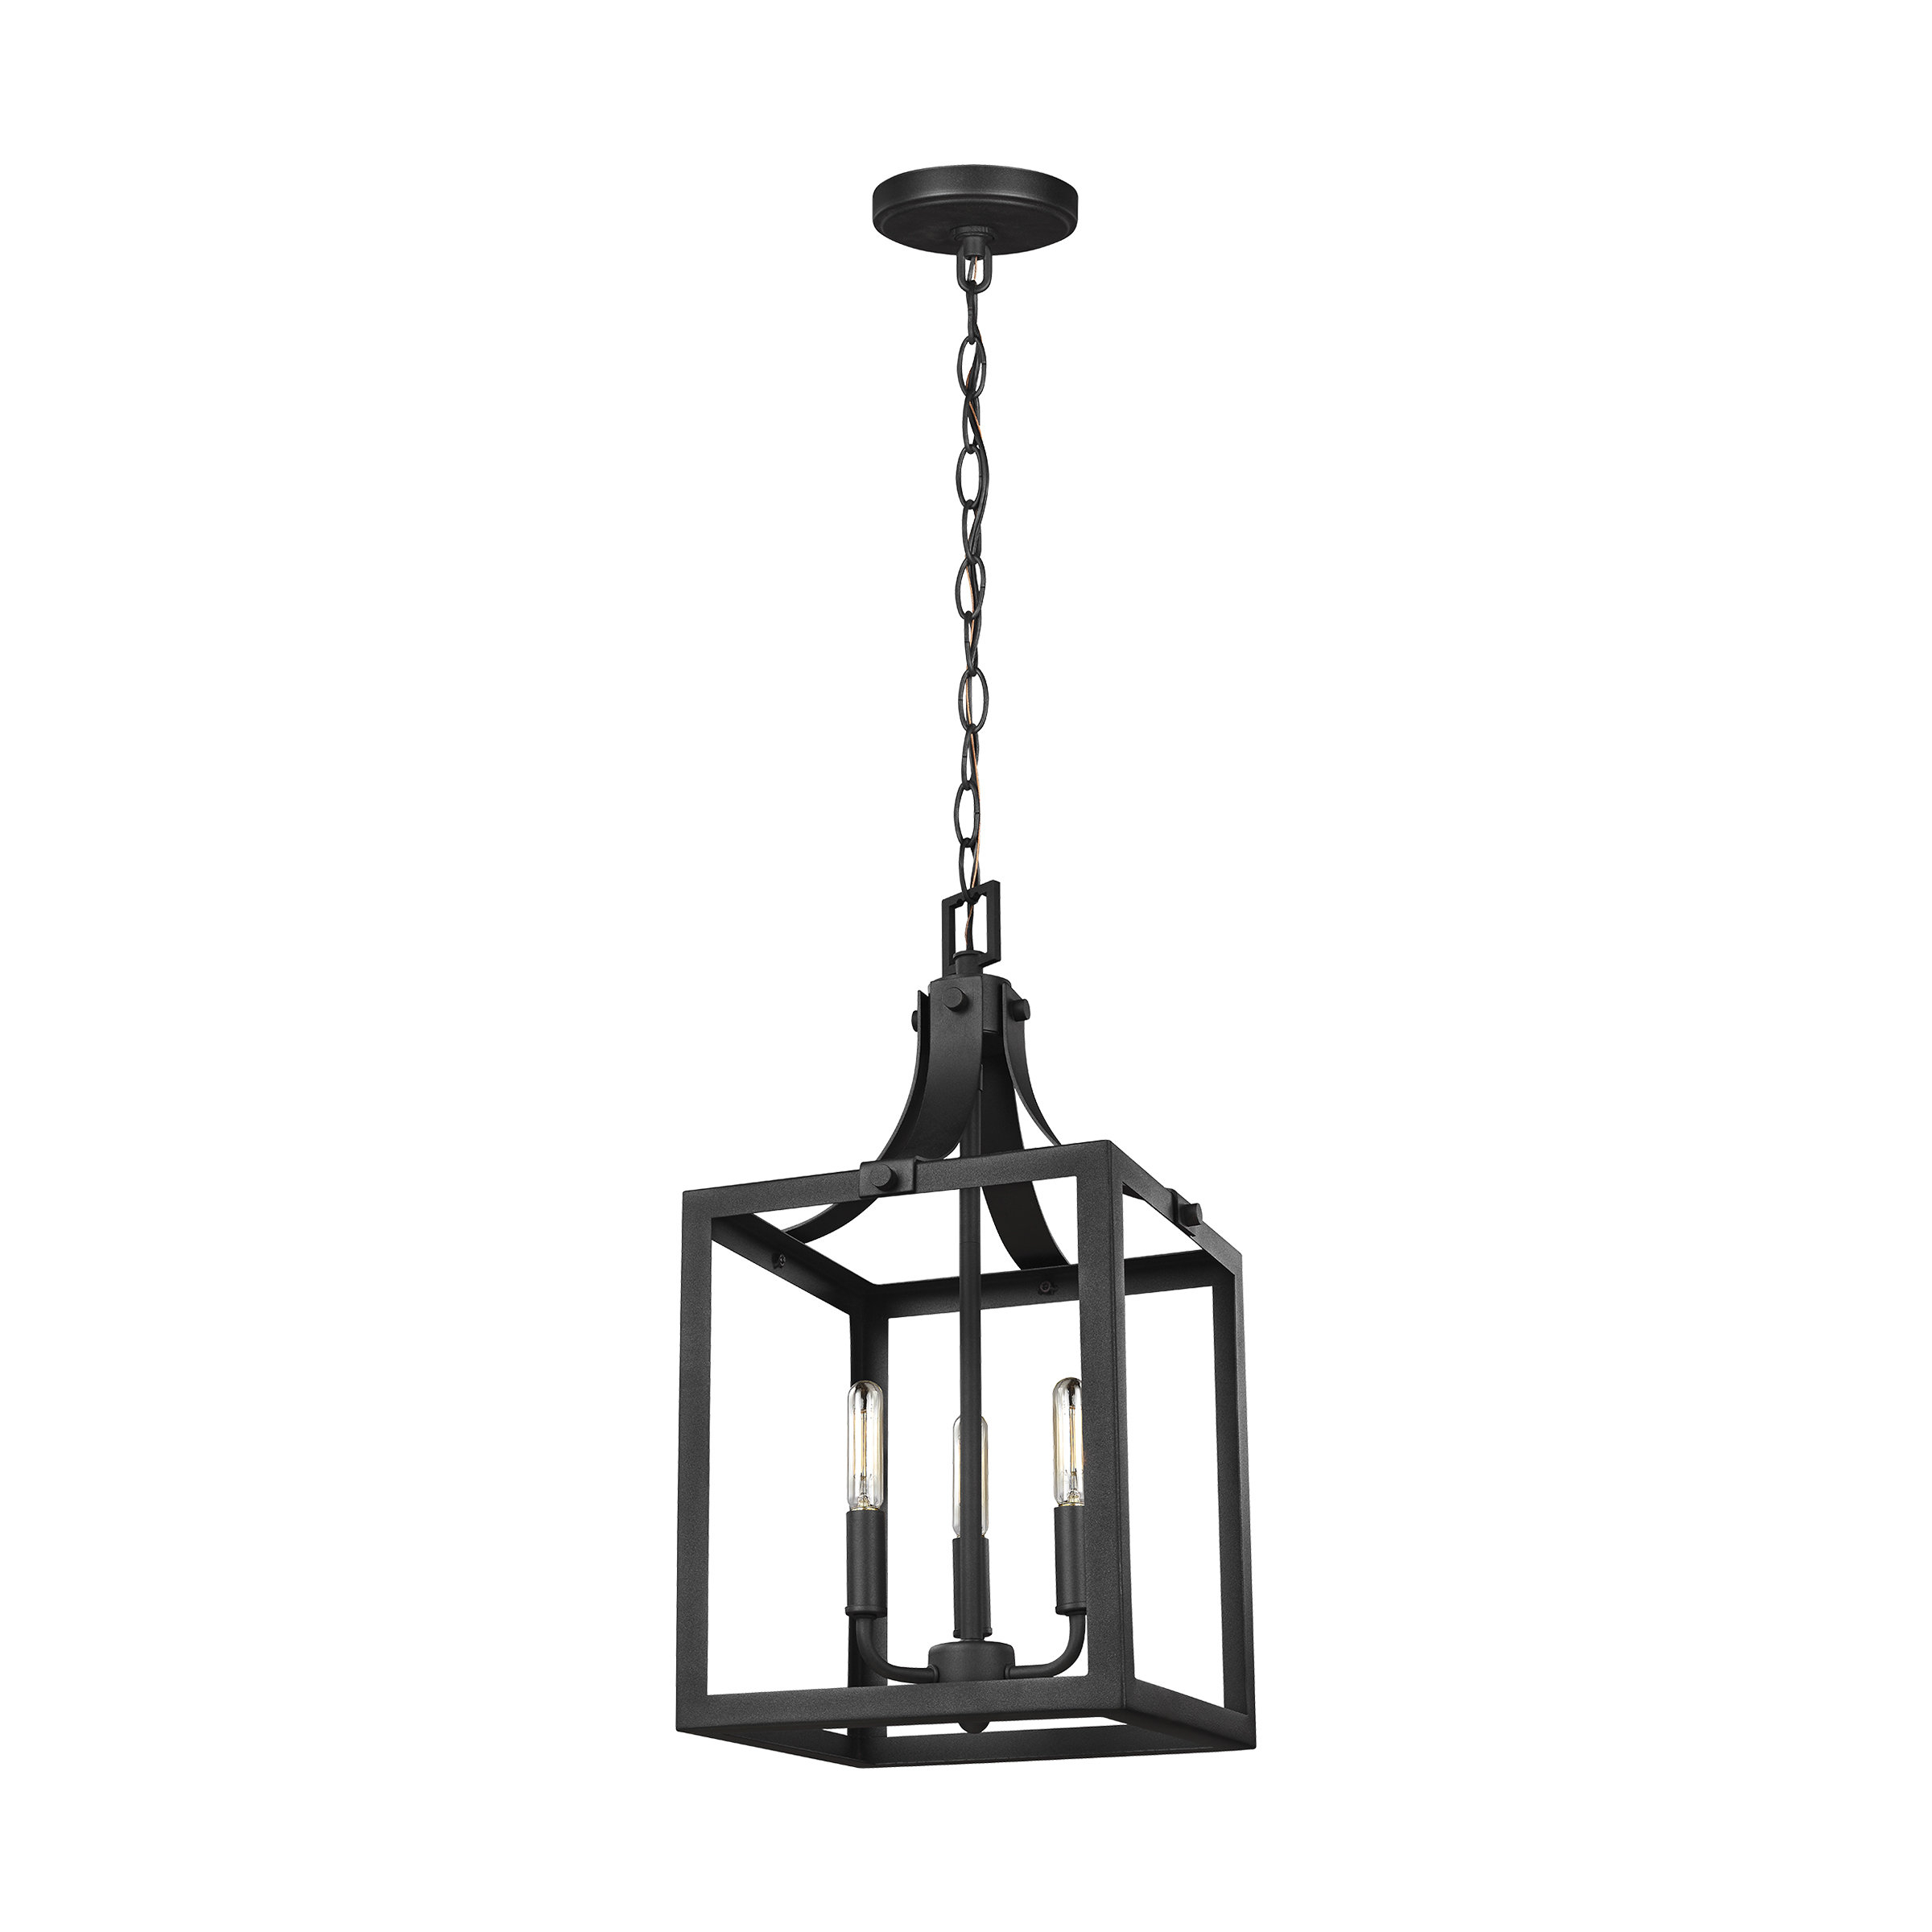 Gracie Oaks Sherri Ann 3 Light Lantern Square / Rectangle Pendant Pertaining To Odie 8 Light Lantern Square / Rectangle Pendants (View 10 of 30)